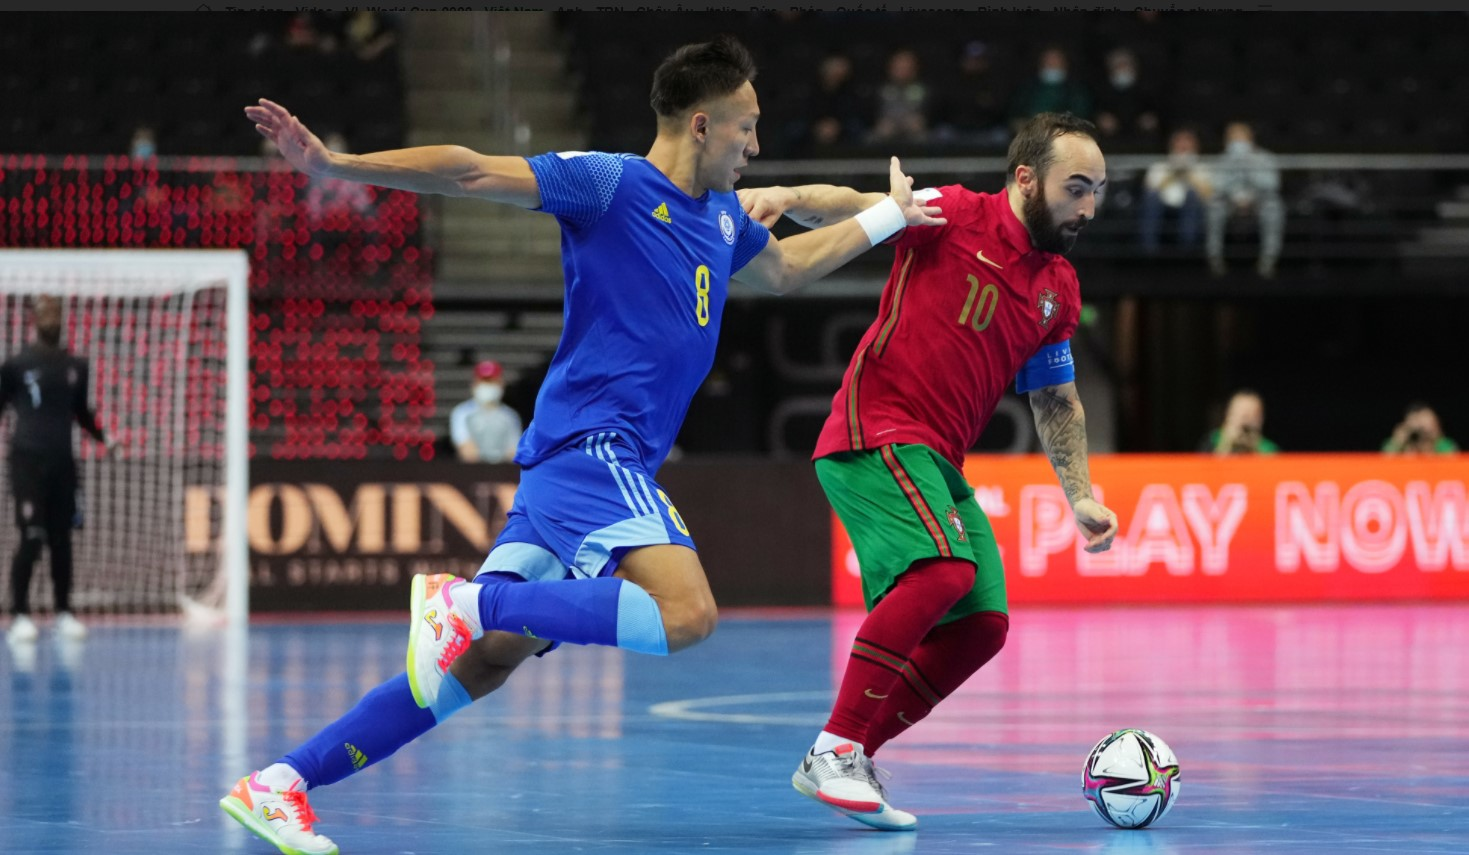 Futsal World Cup semi-final results: Portugal defeated Kazakhstan, promised to 'revenge' Argentina in the final 1